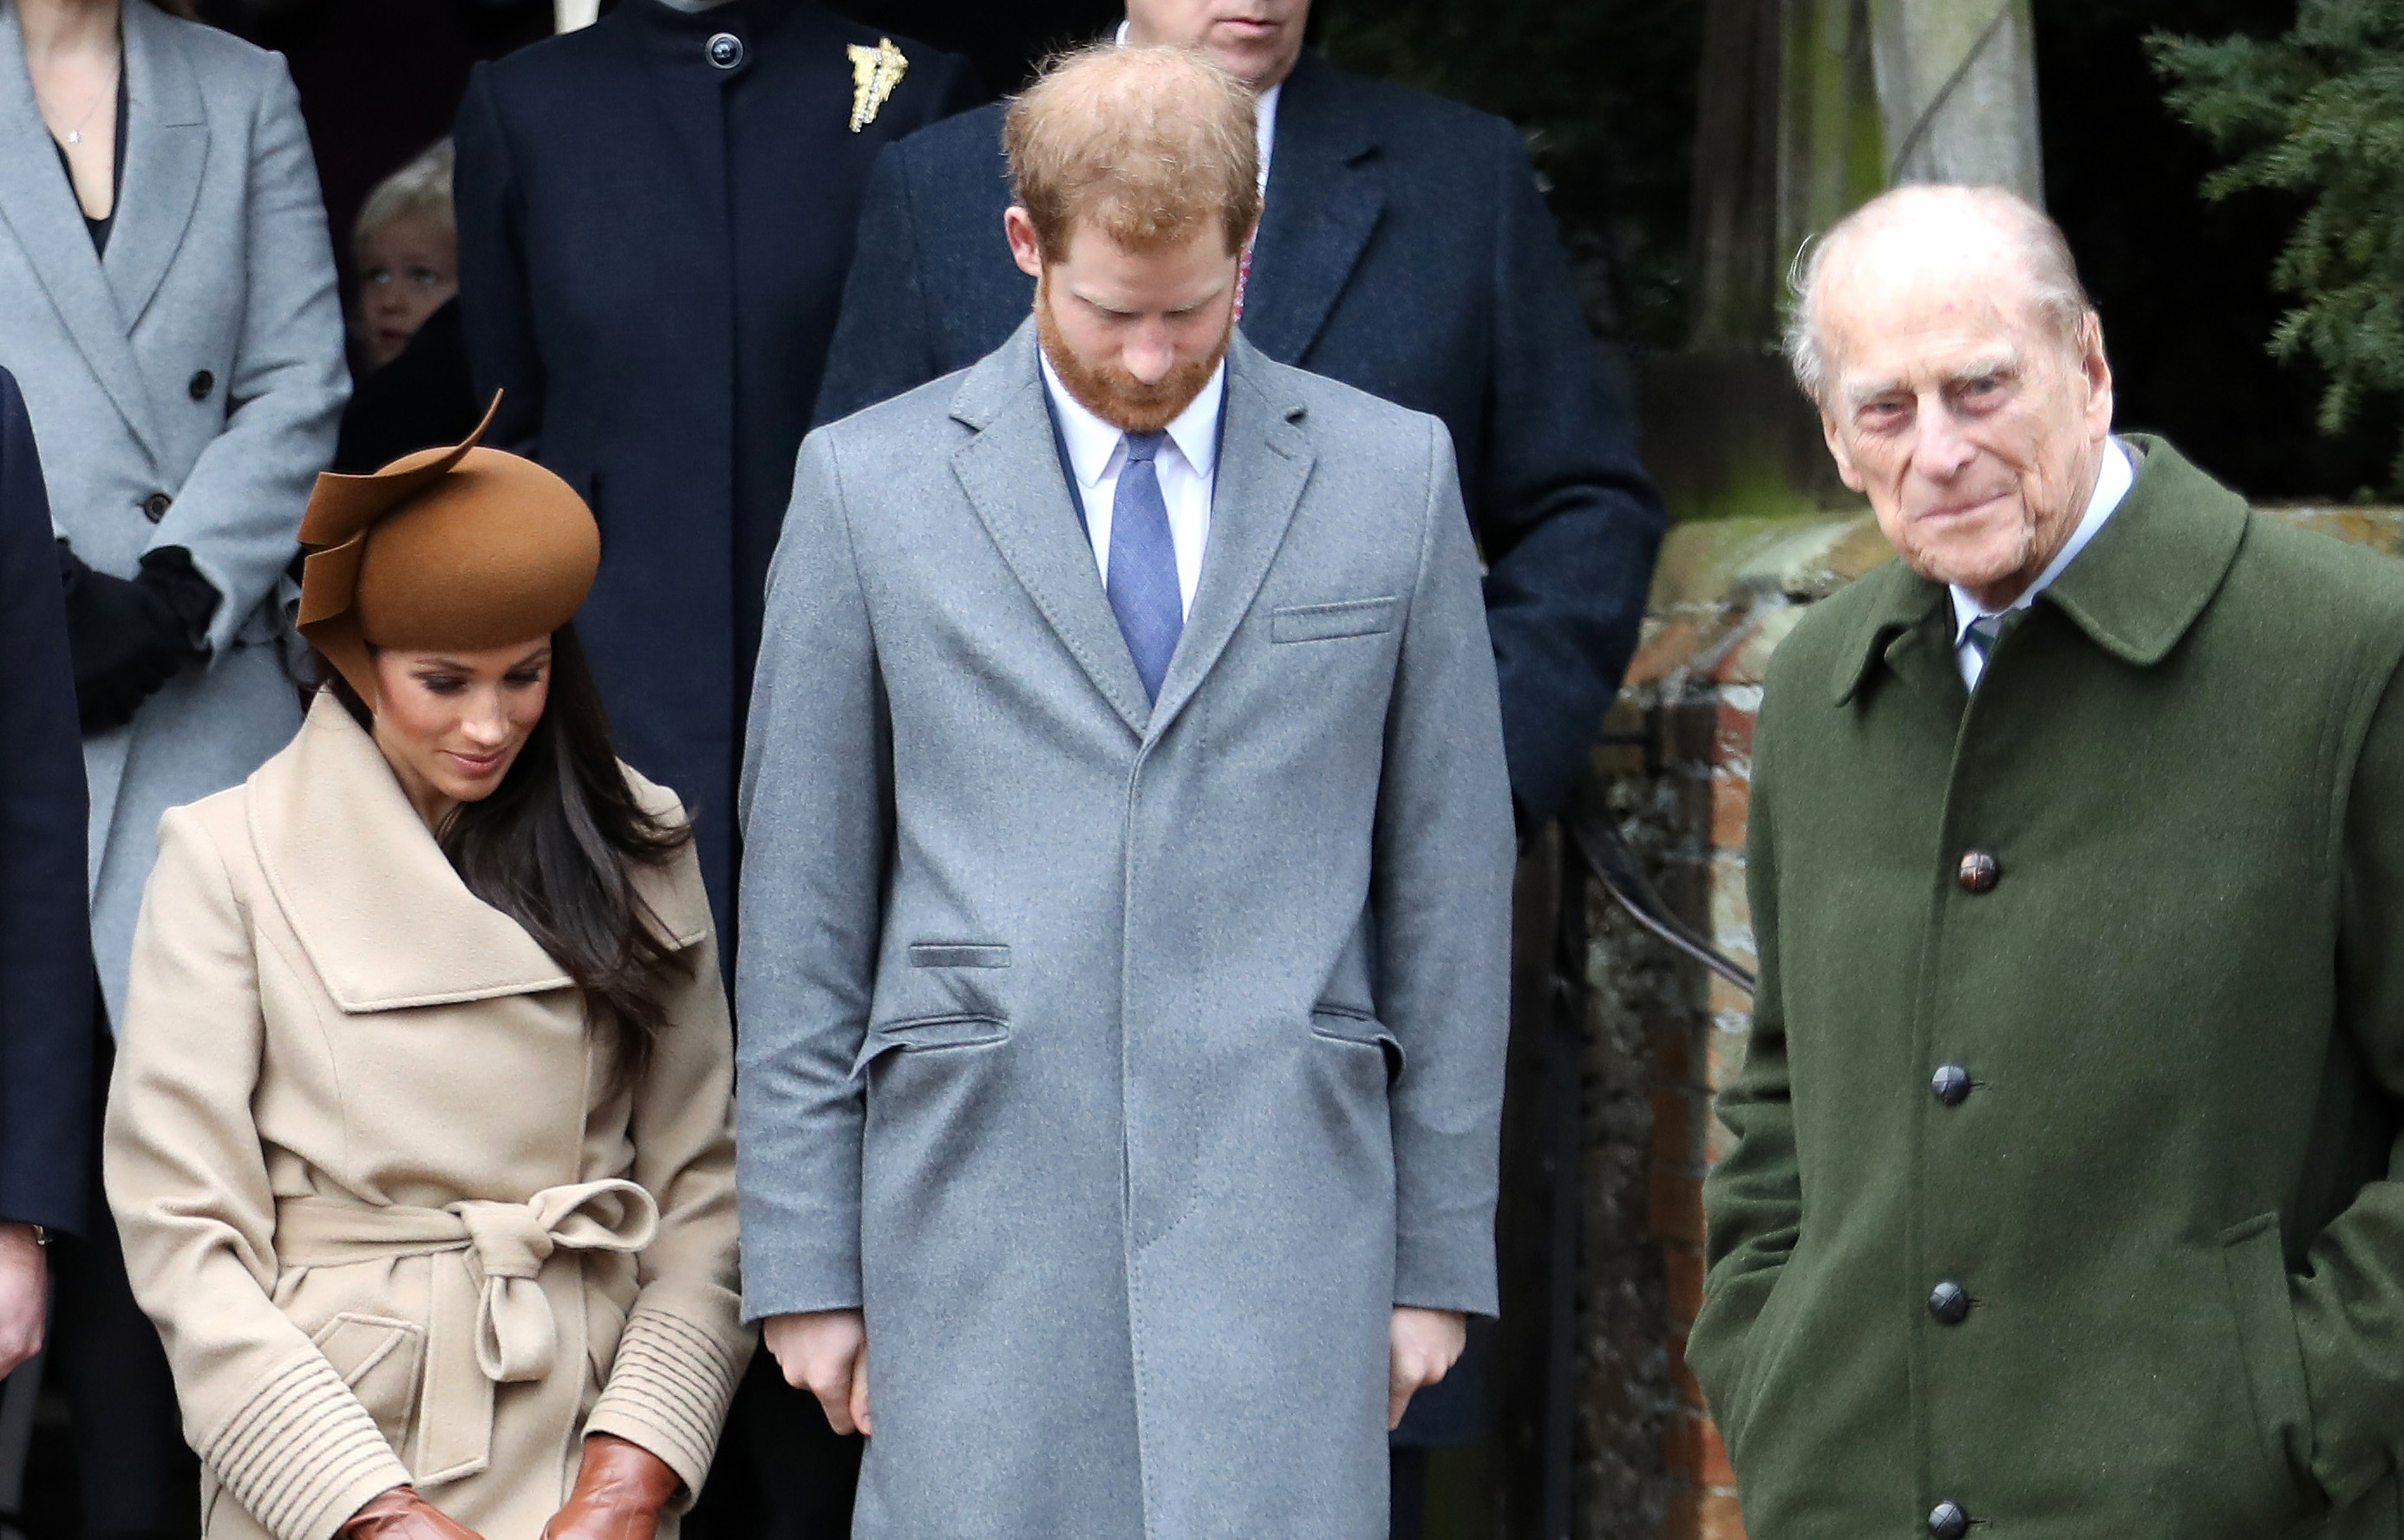 Príncipe Philip, Príncipe Harry e Meghan Markle (Foto: Getty Images)